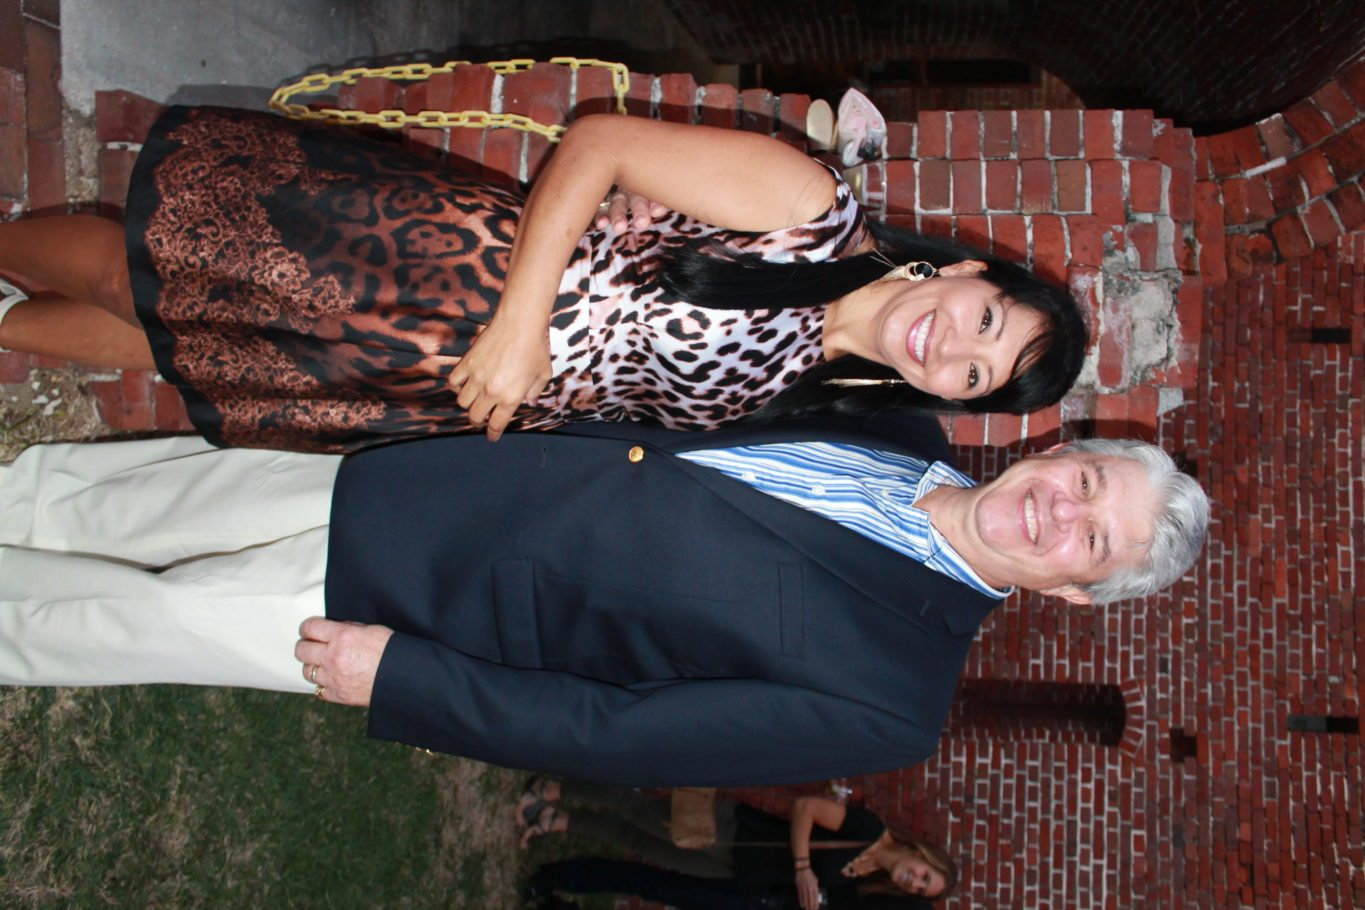 1. The honorable Mark Jones is accompanied by his lovely wife Marleny on a perfect evening beneath the stars.